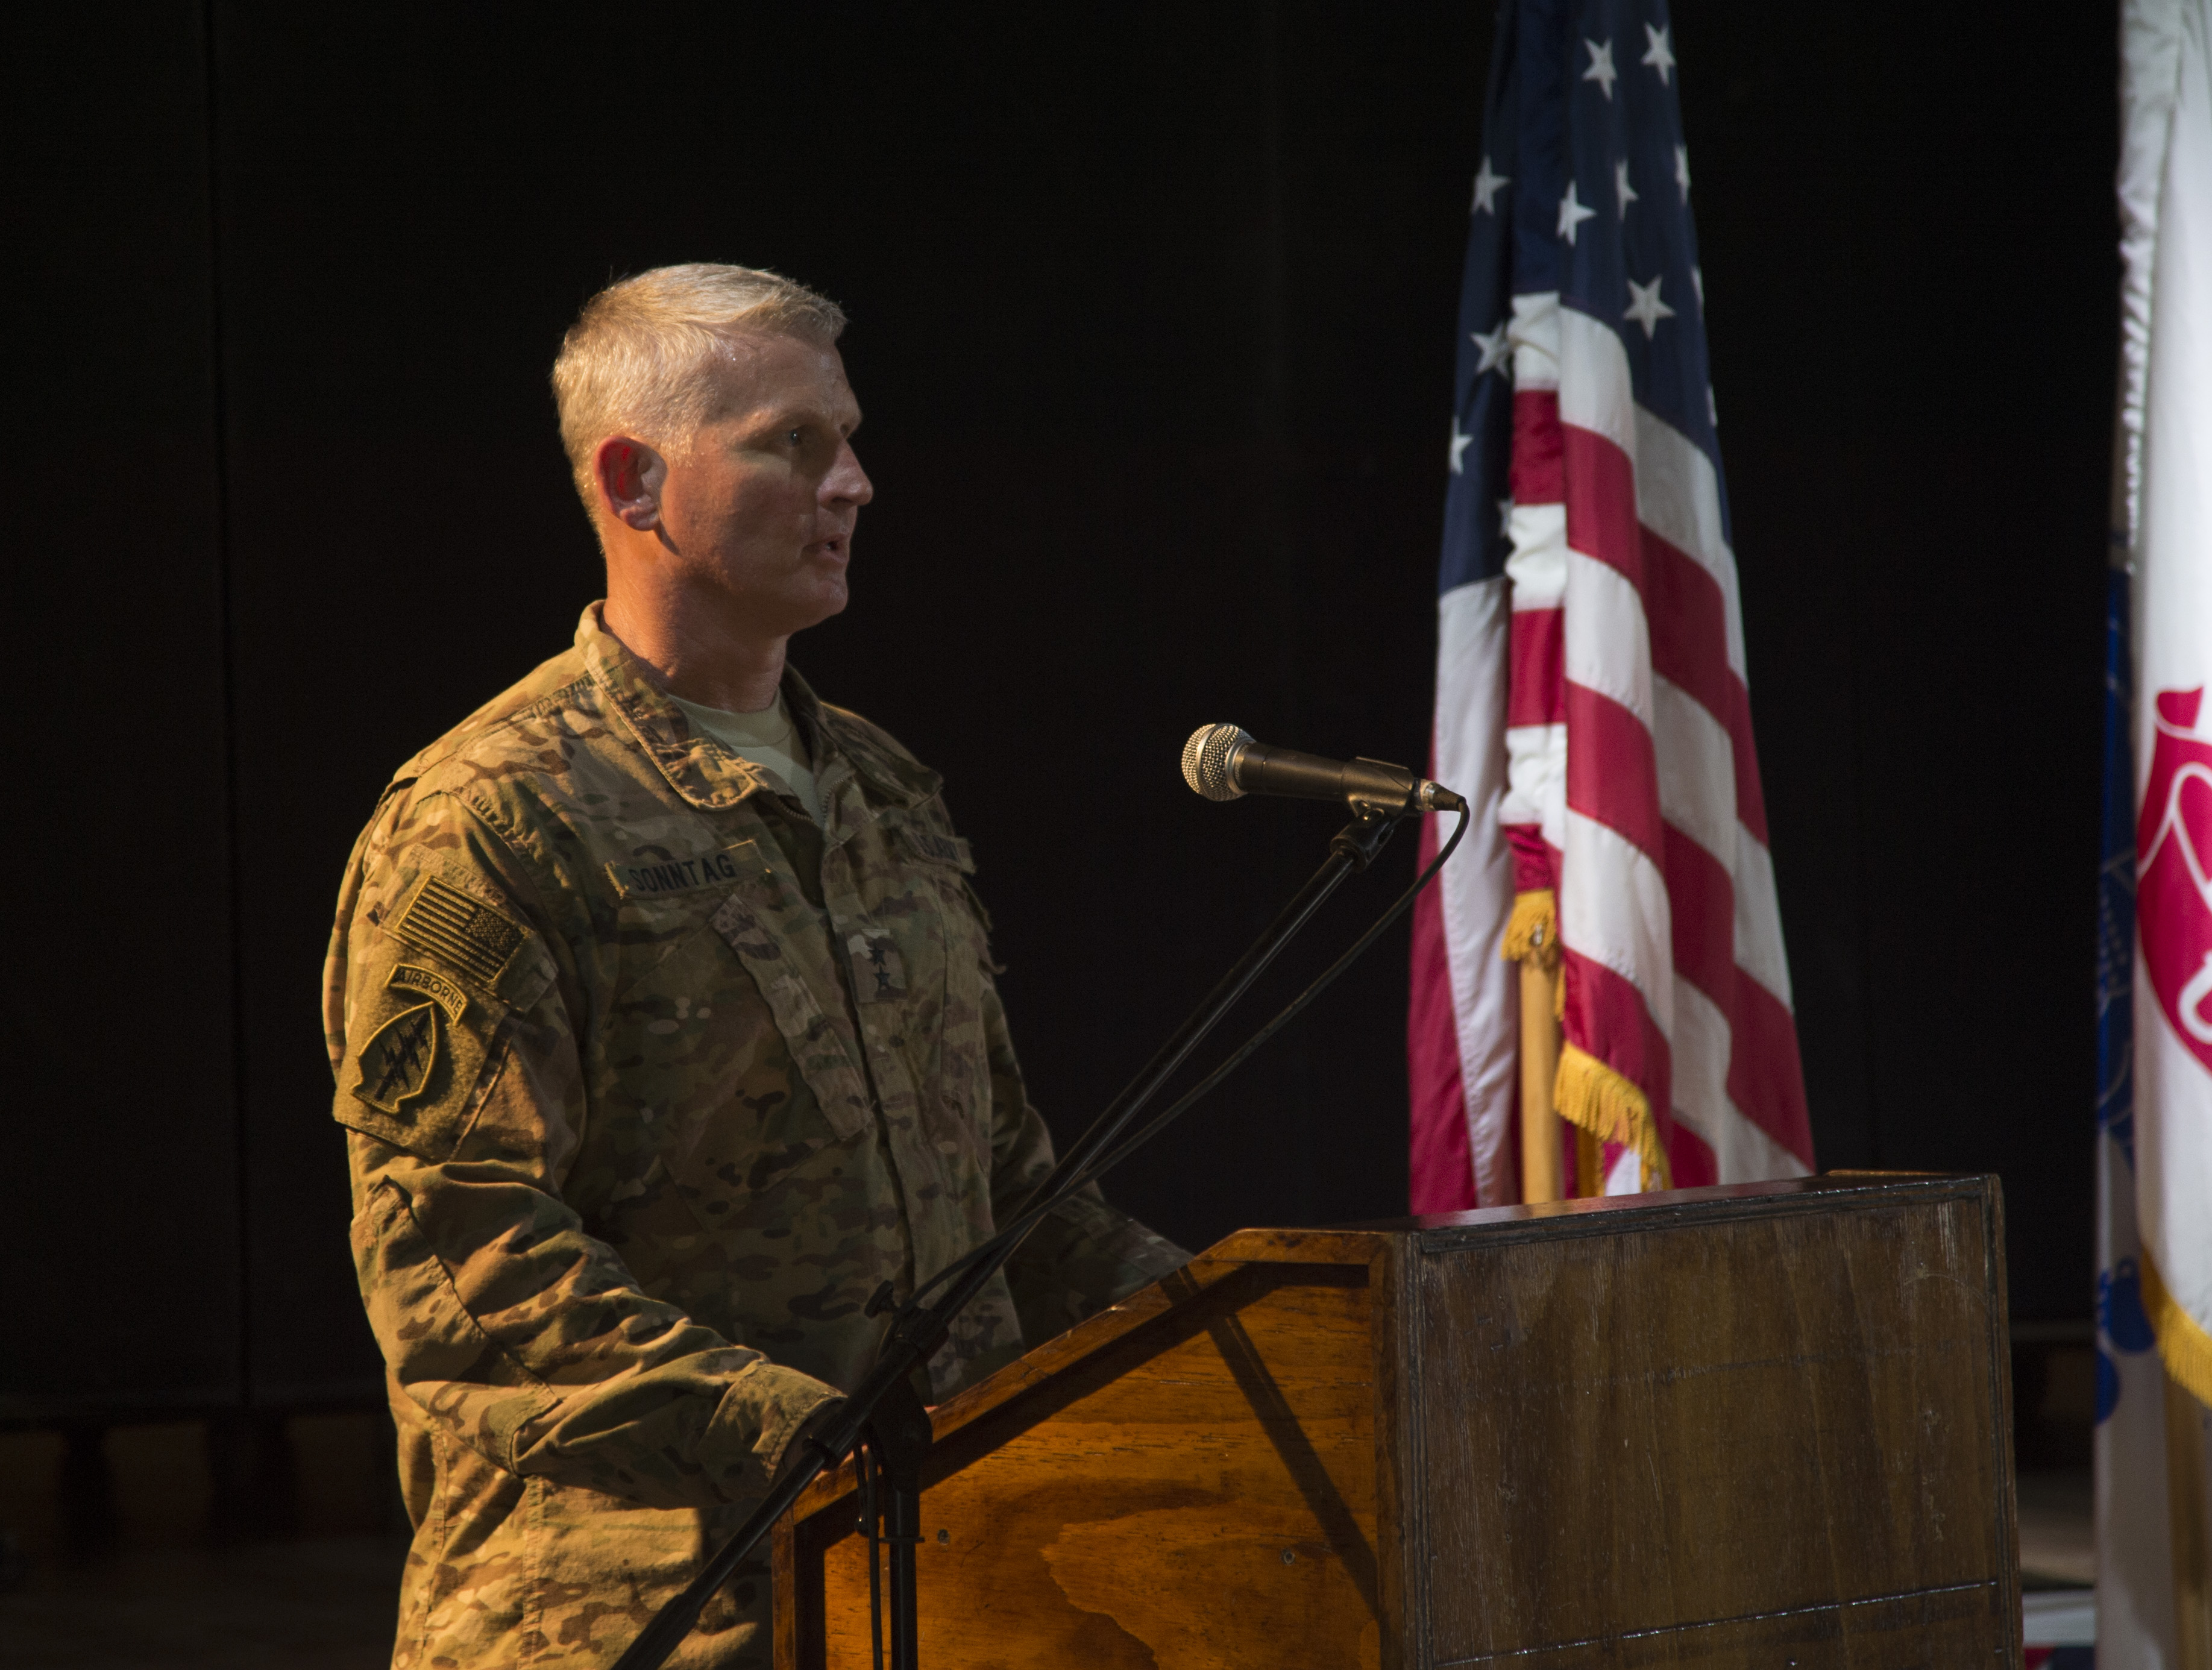 U.S. Army Maj. Gen. Kurt Sonntag, Combined Joint Task Force - Horn of Africa commanding general, gives remarks during a 9/11 remembrance ceremony held Sept. 11, 2016, at Camp Lemonnier, Djibouti. The ceremony was organized and conducted by Fiscal Year 2017 Chief Petty Officer selectees from Camp Lemonnier and Combined Joint Task Force - Horn of Africa.  (U.S. Air Force photo by Staff Sgt. Eric Summers Jr.)